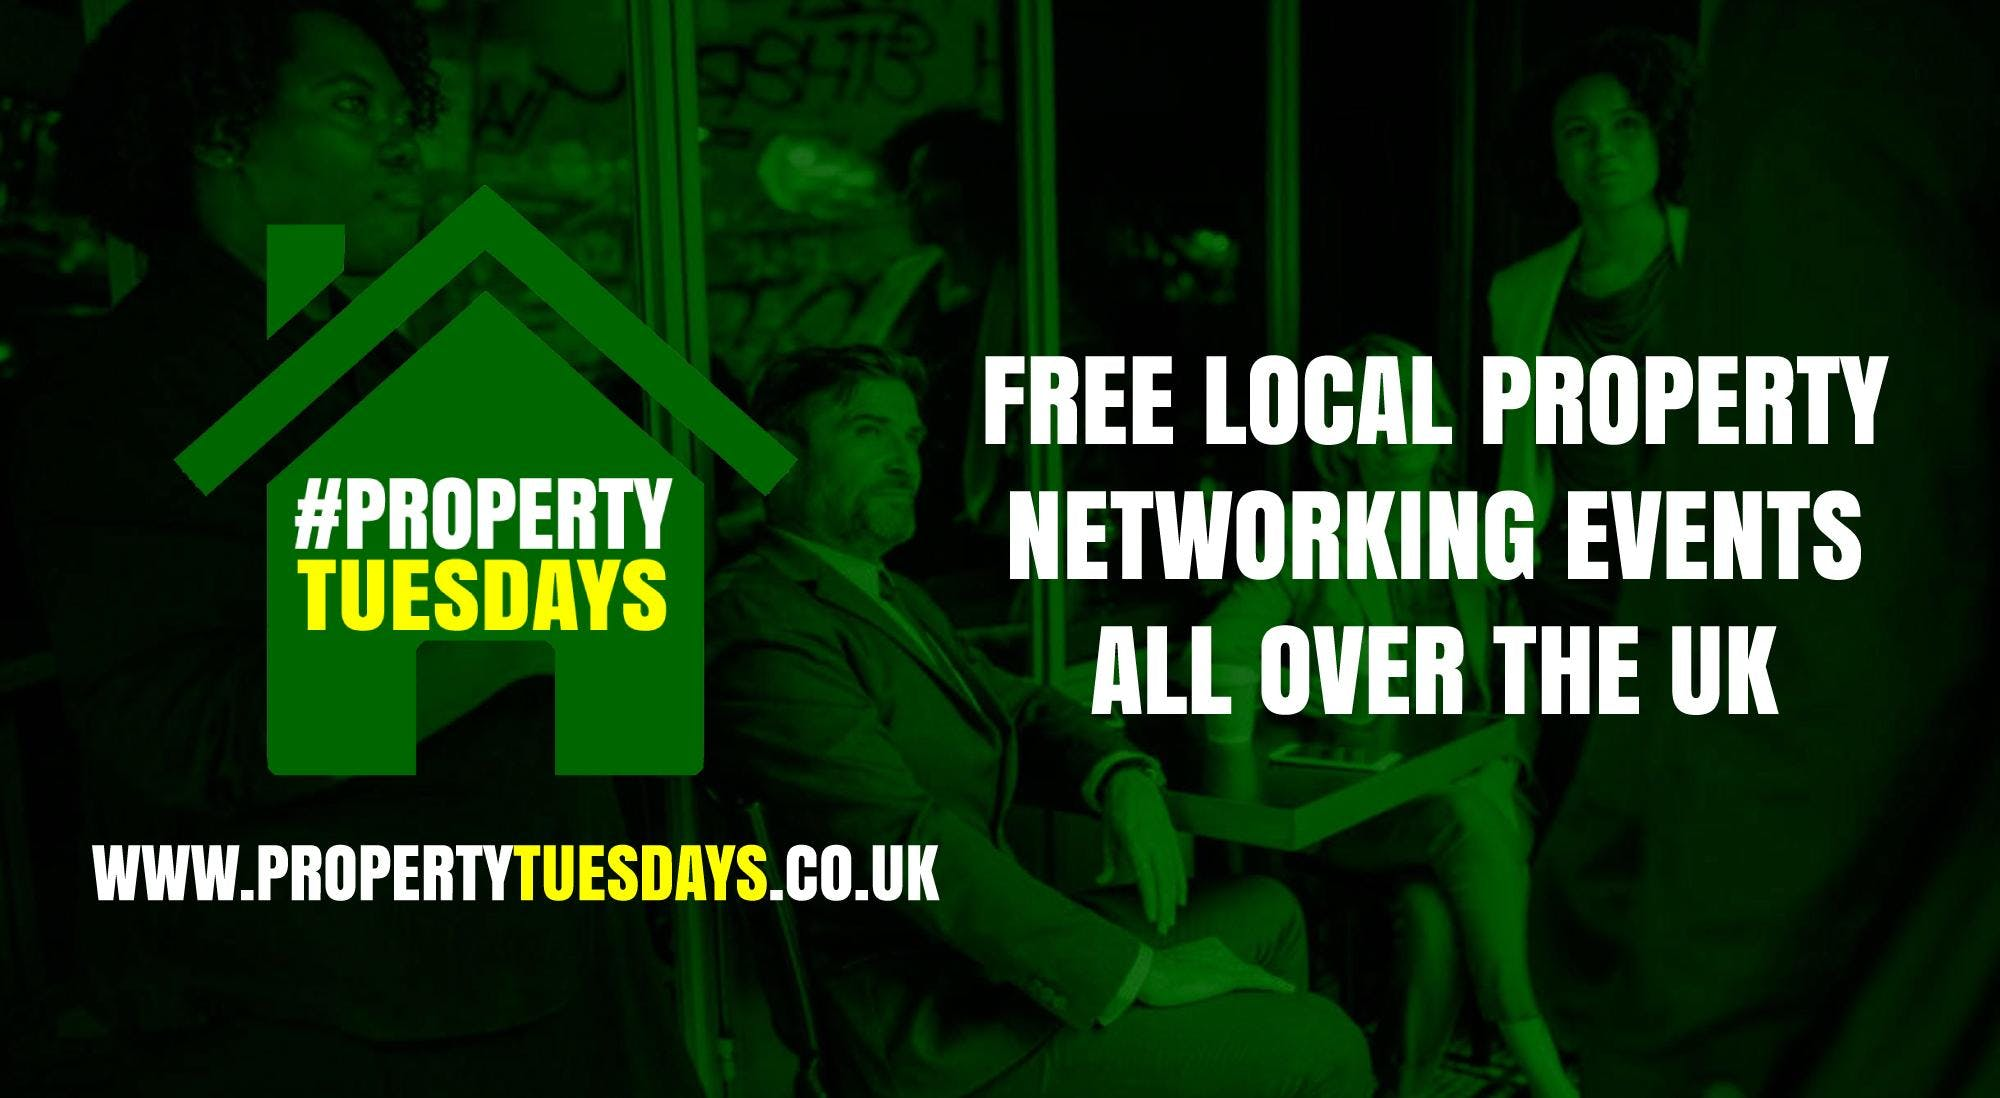 Property Tuesdays! Free property networking event in Bristol